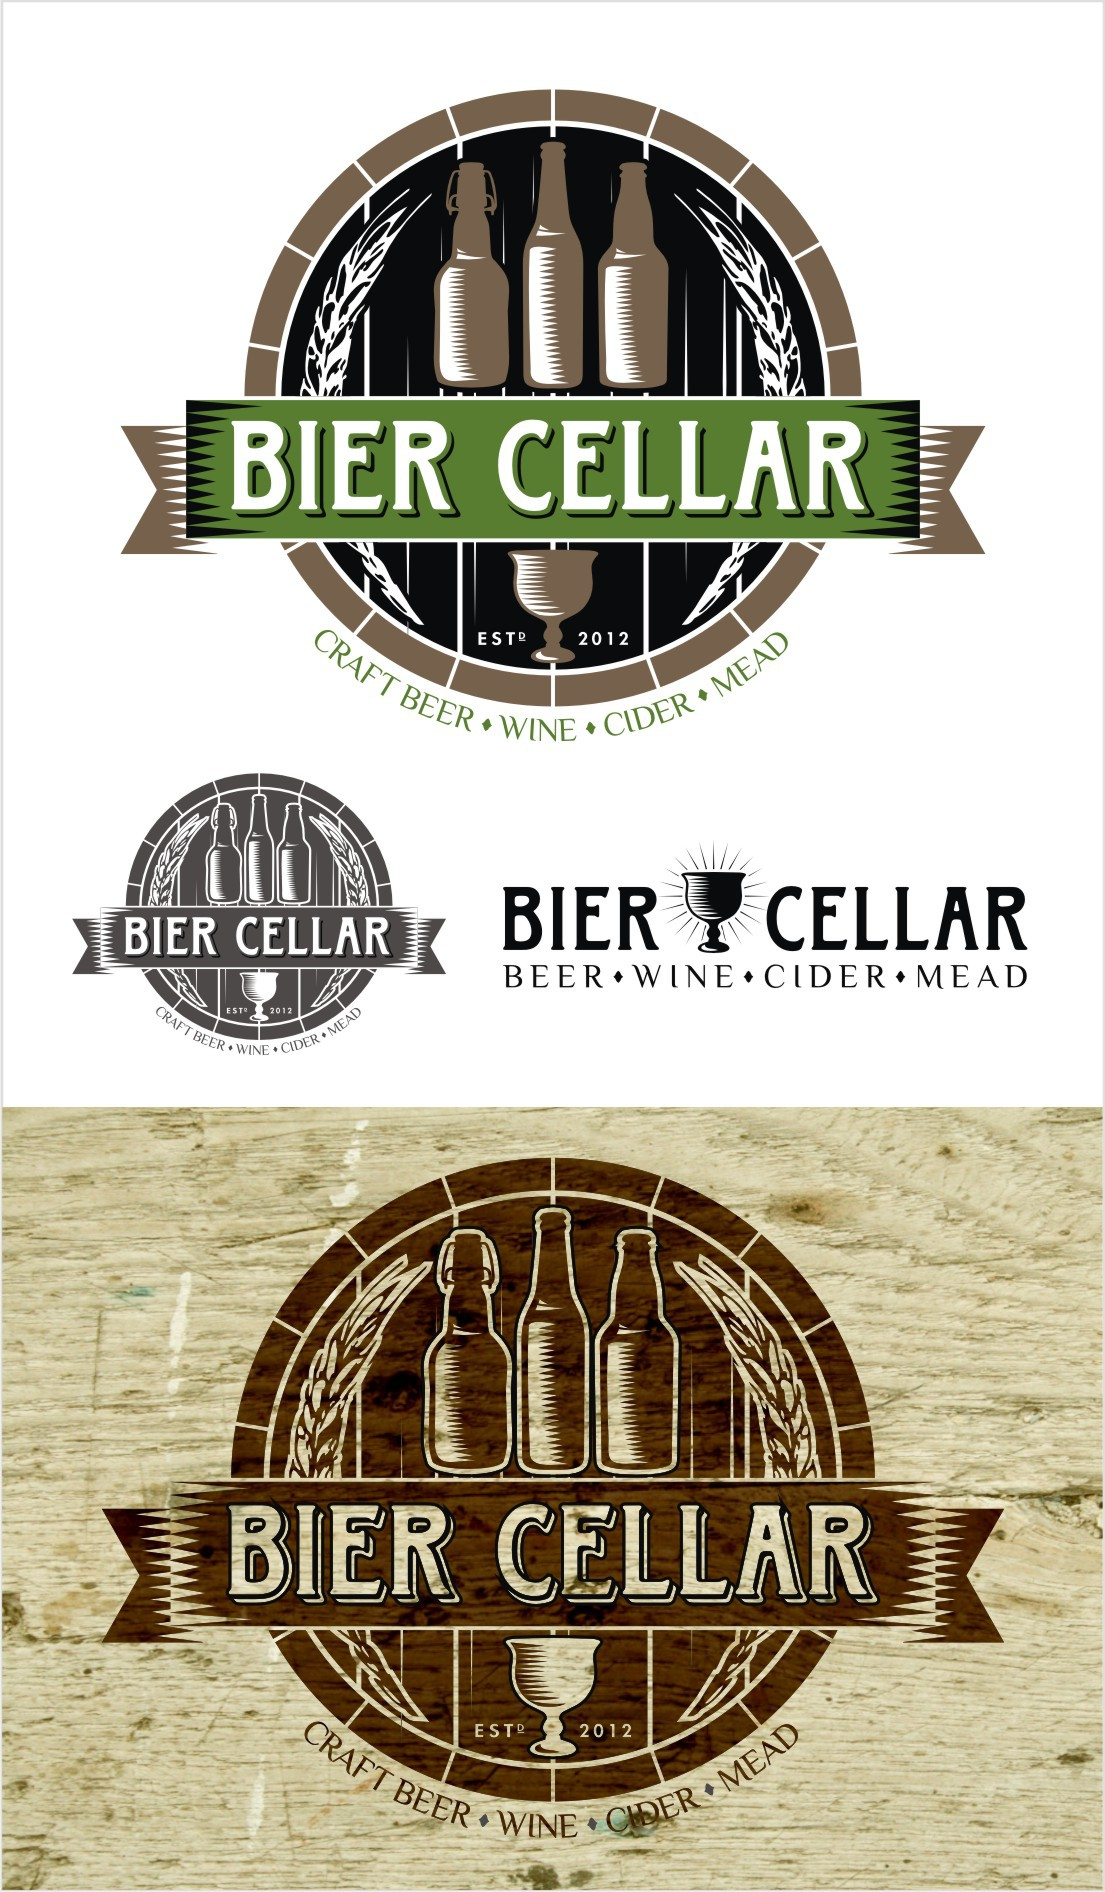 Logo Needed for Artisinal Beer and Wine Store (Bier Cellar)